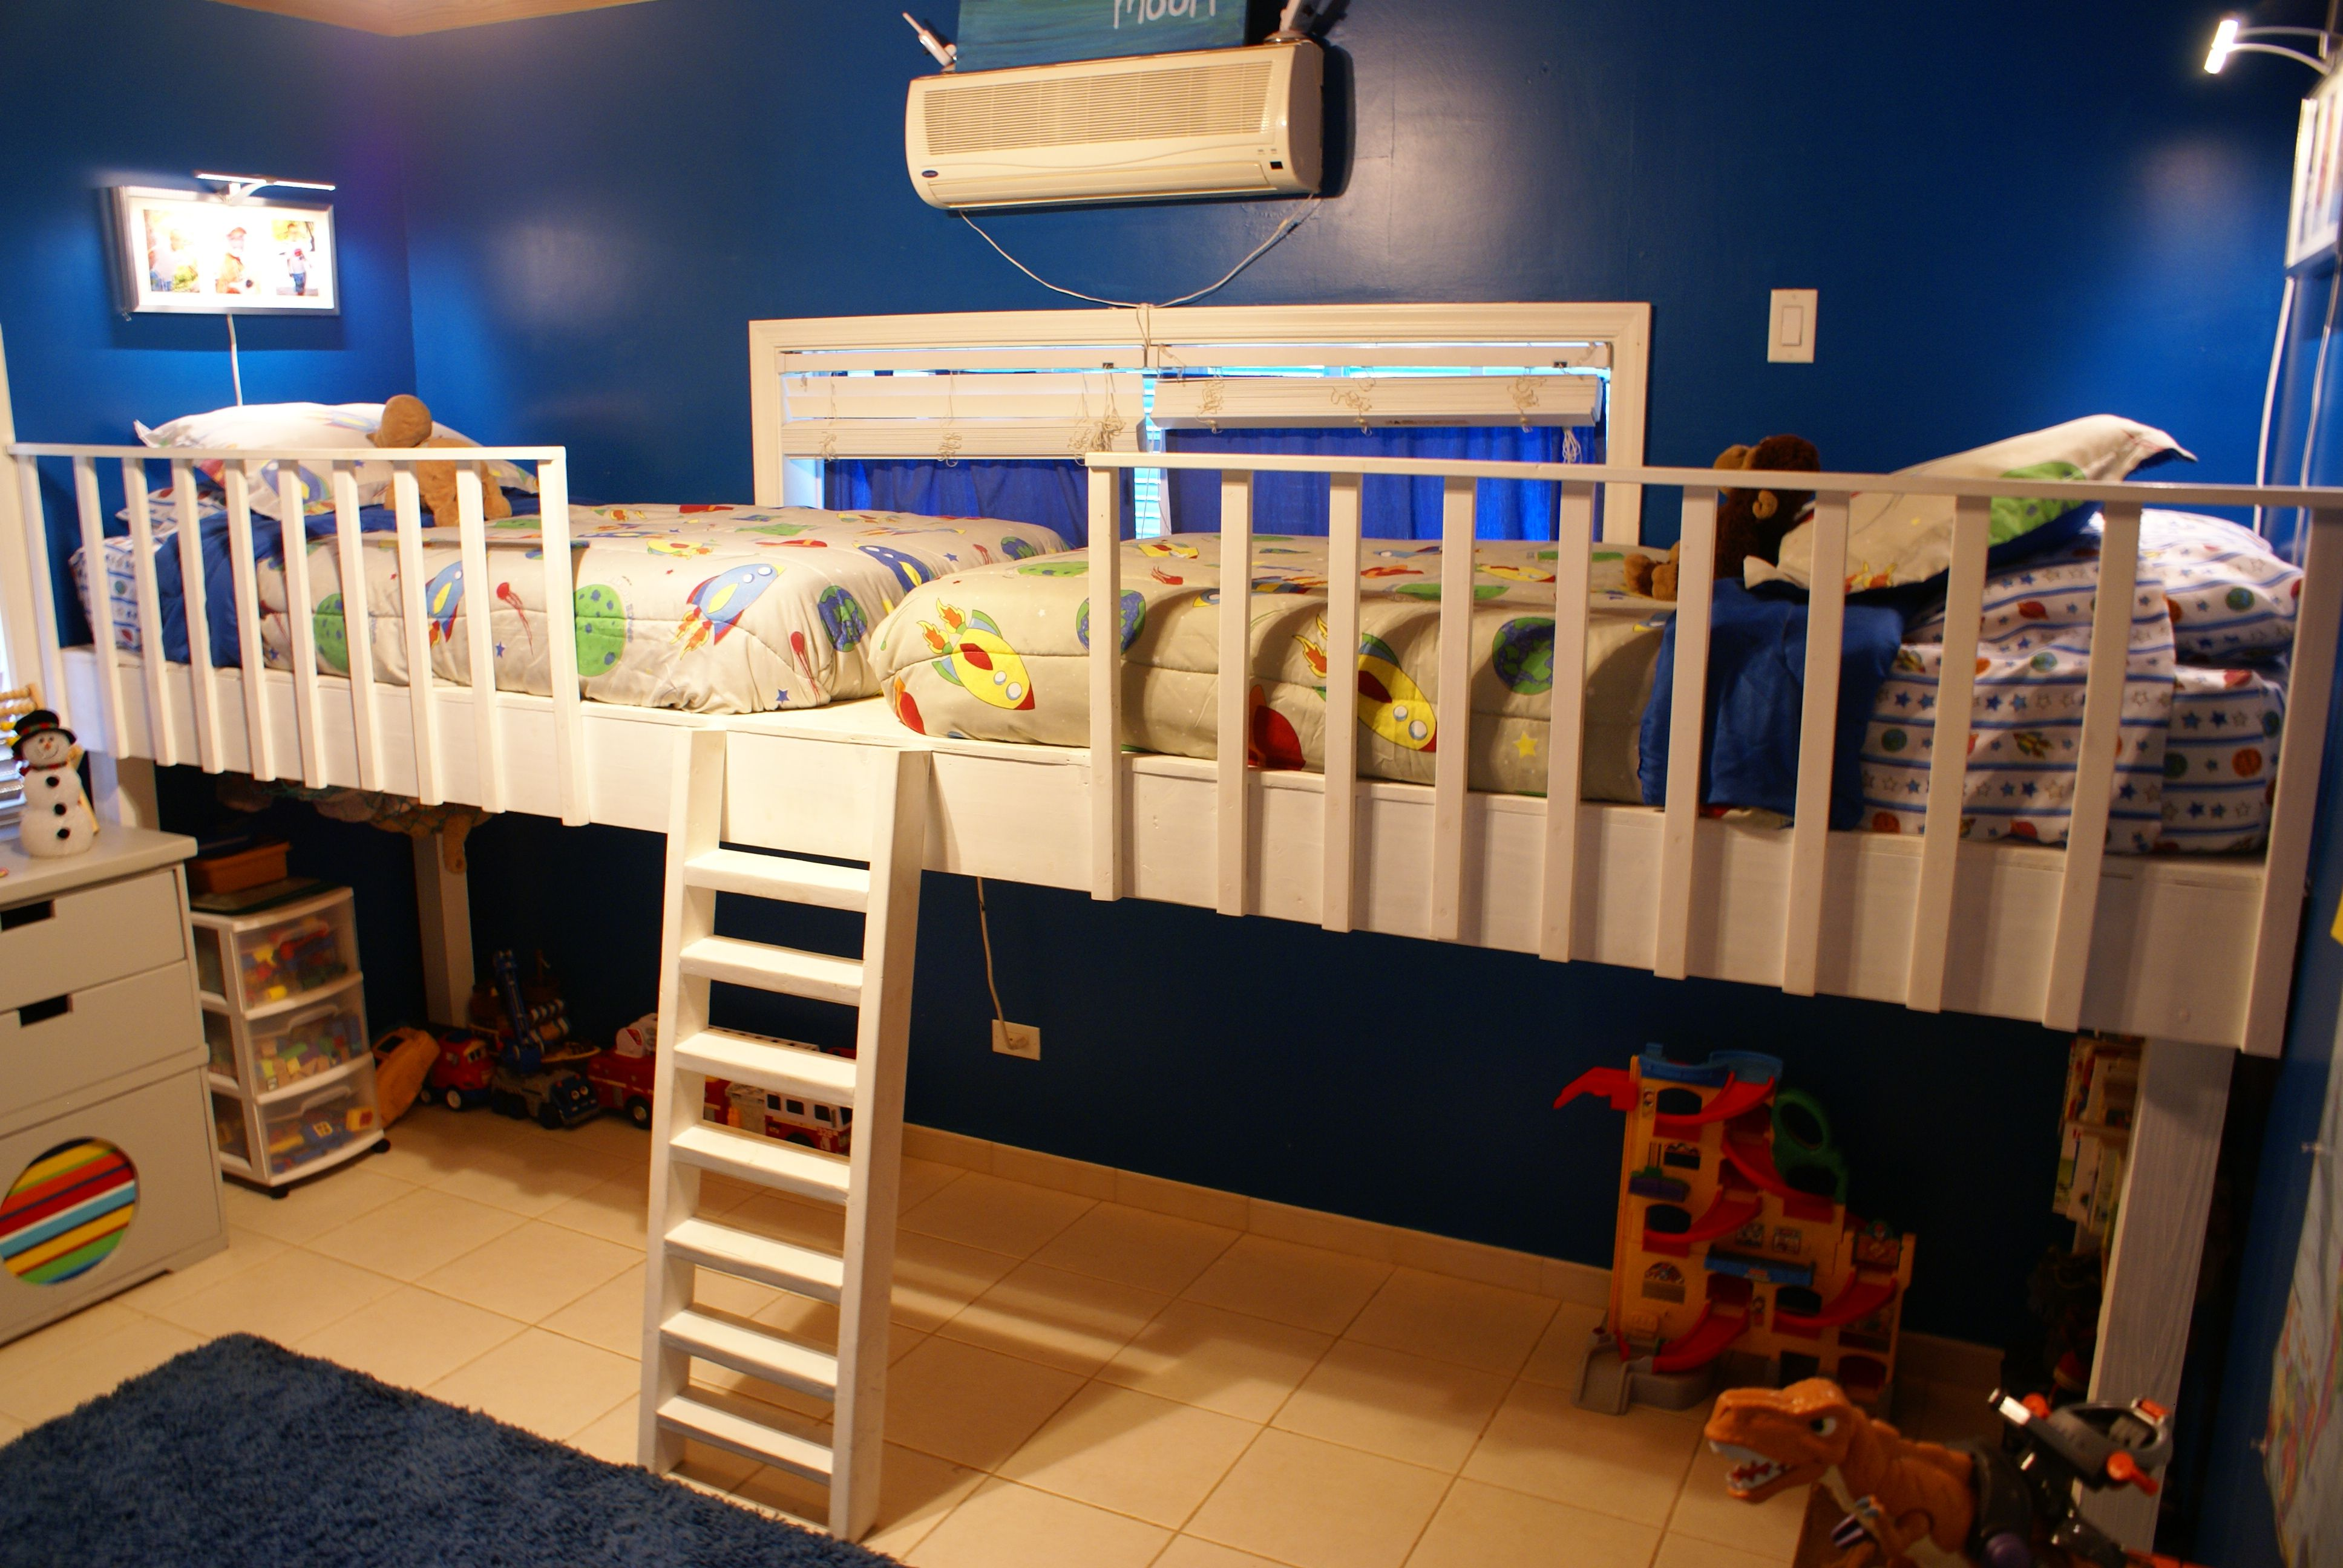 Loft bed ideas diy  Double Loft Bed  Do It Yourself Home Projects from Ana White  ski